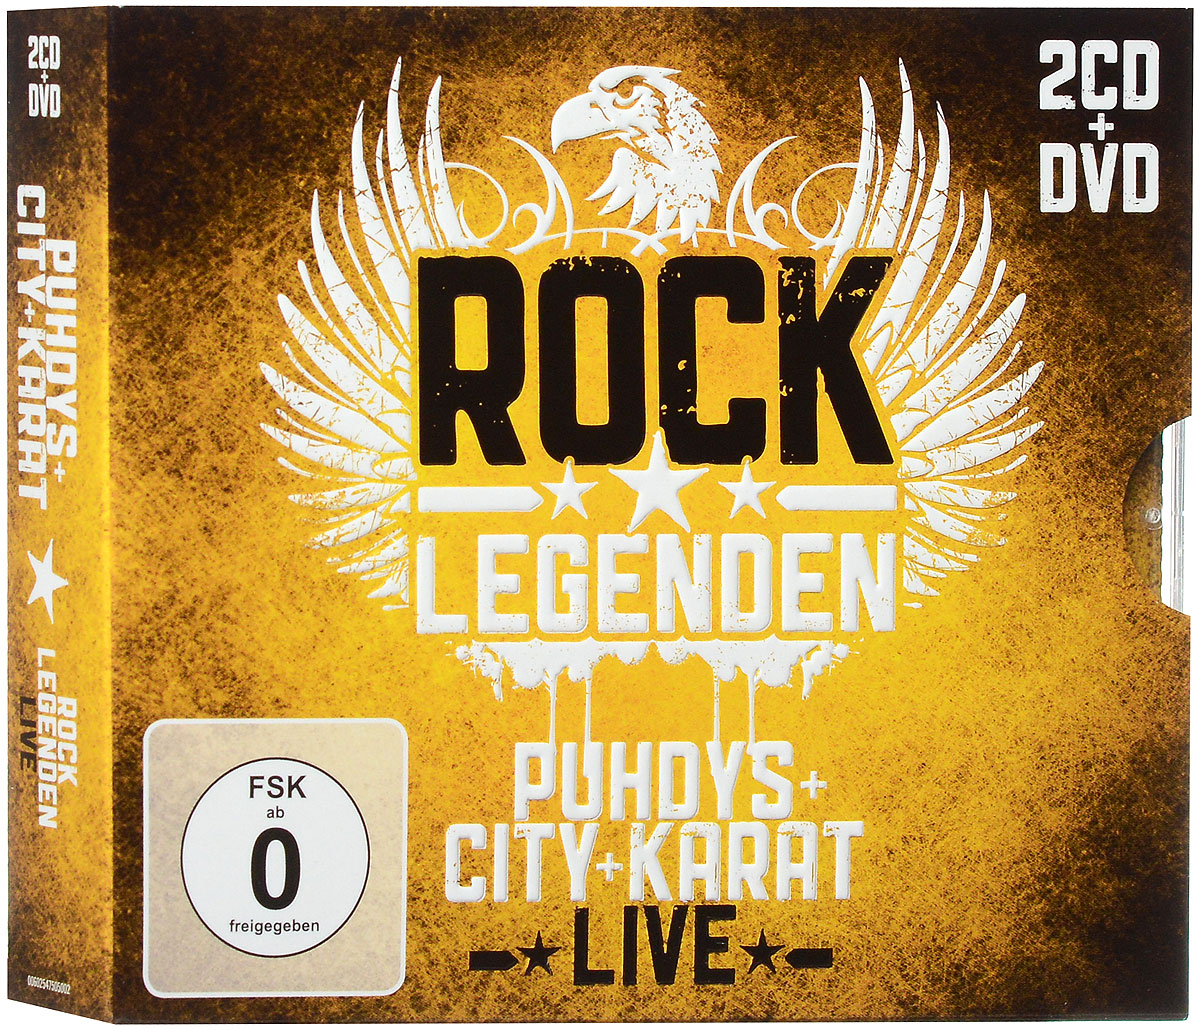 Puhdys + City + Karat. Rock Legenden Live (2 CD + DVD) mit mh 750 us power cable 2 0m